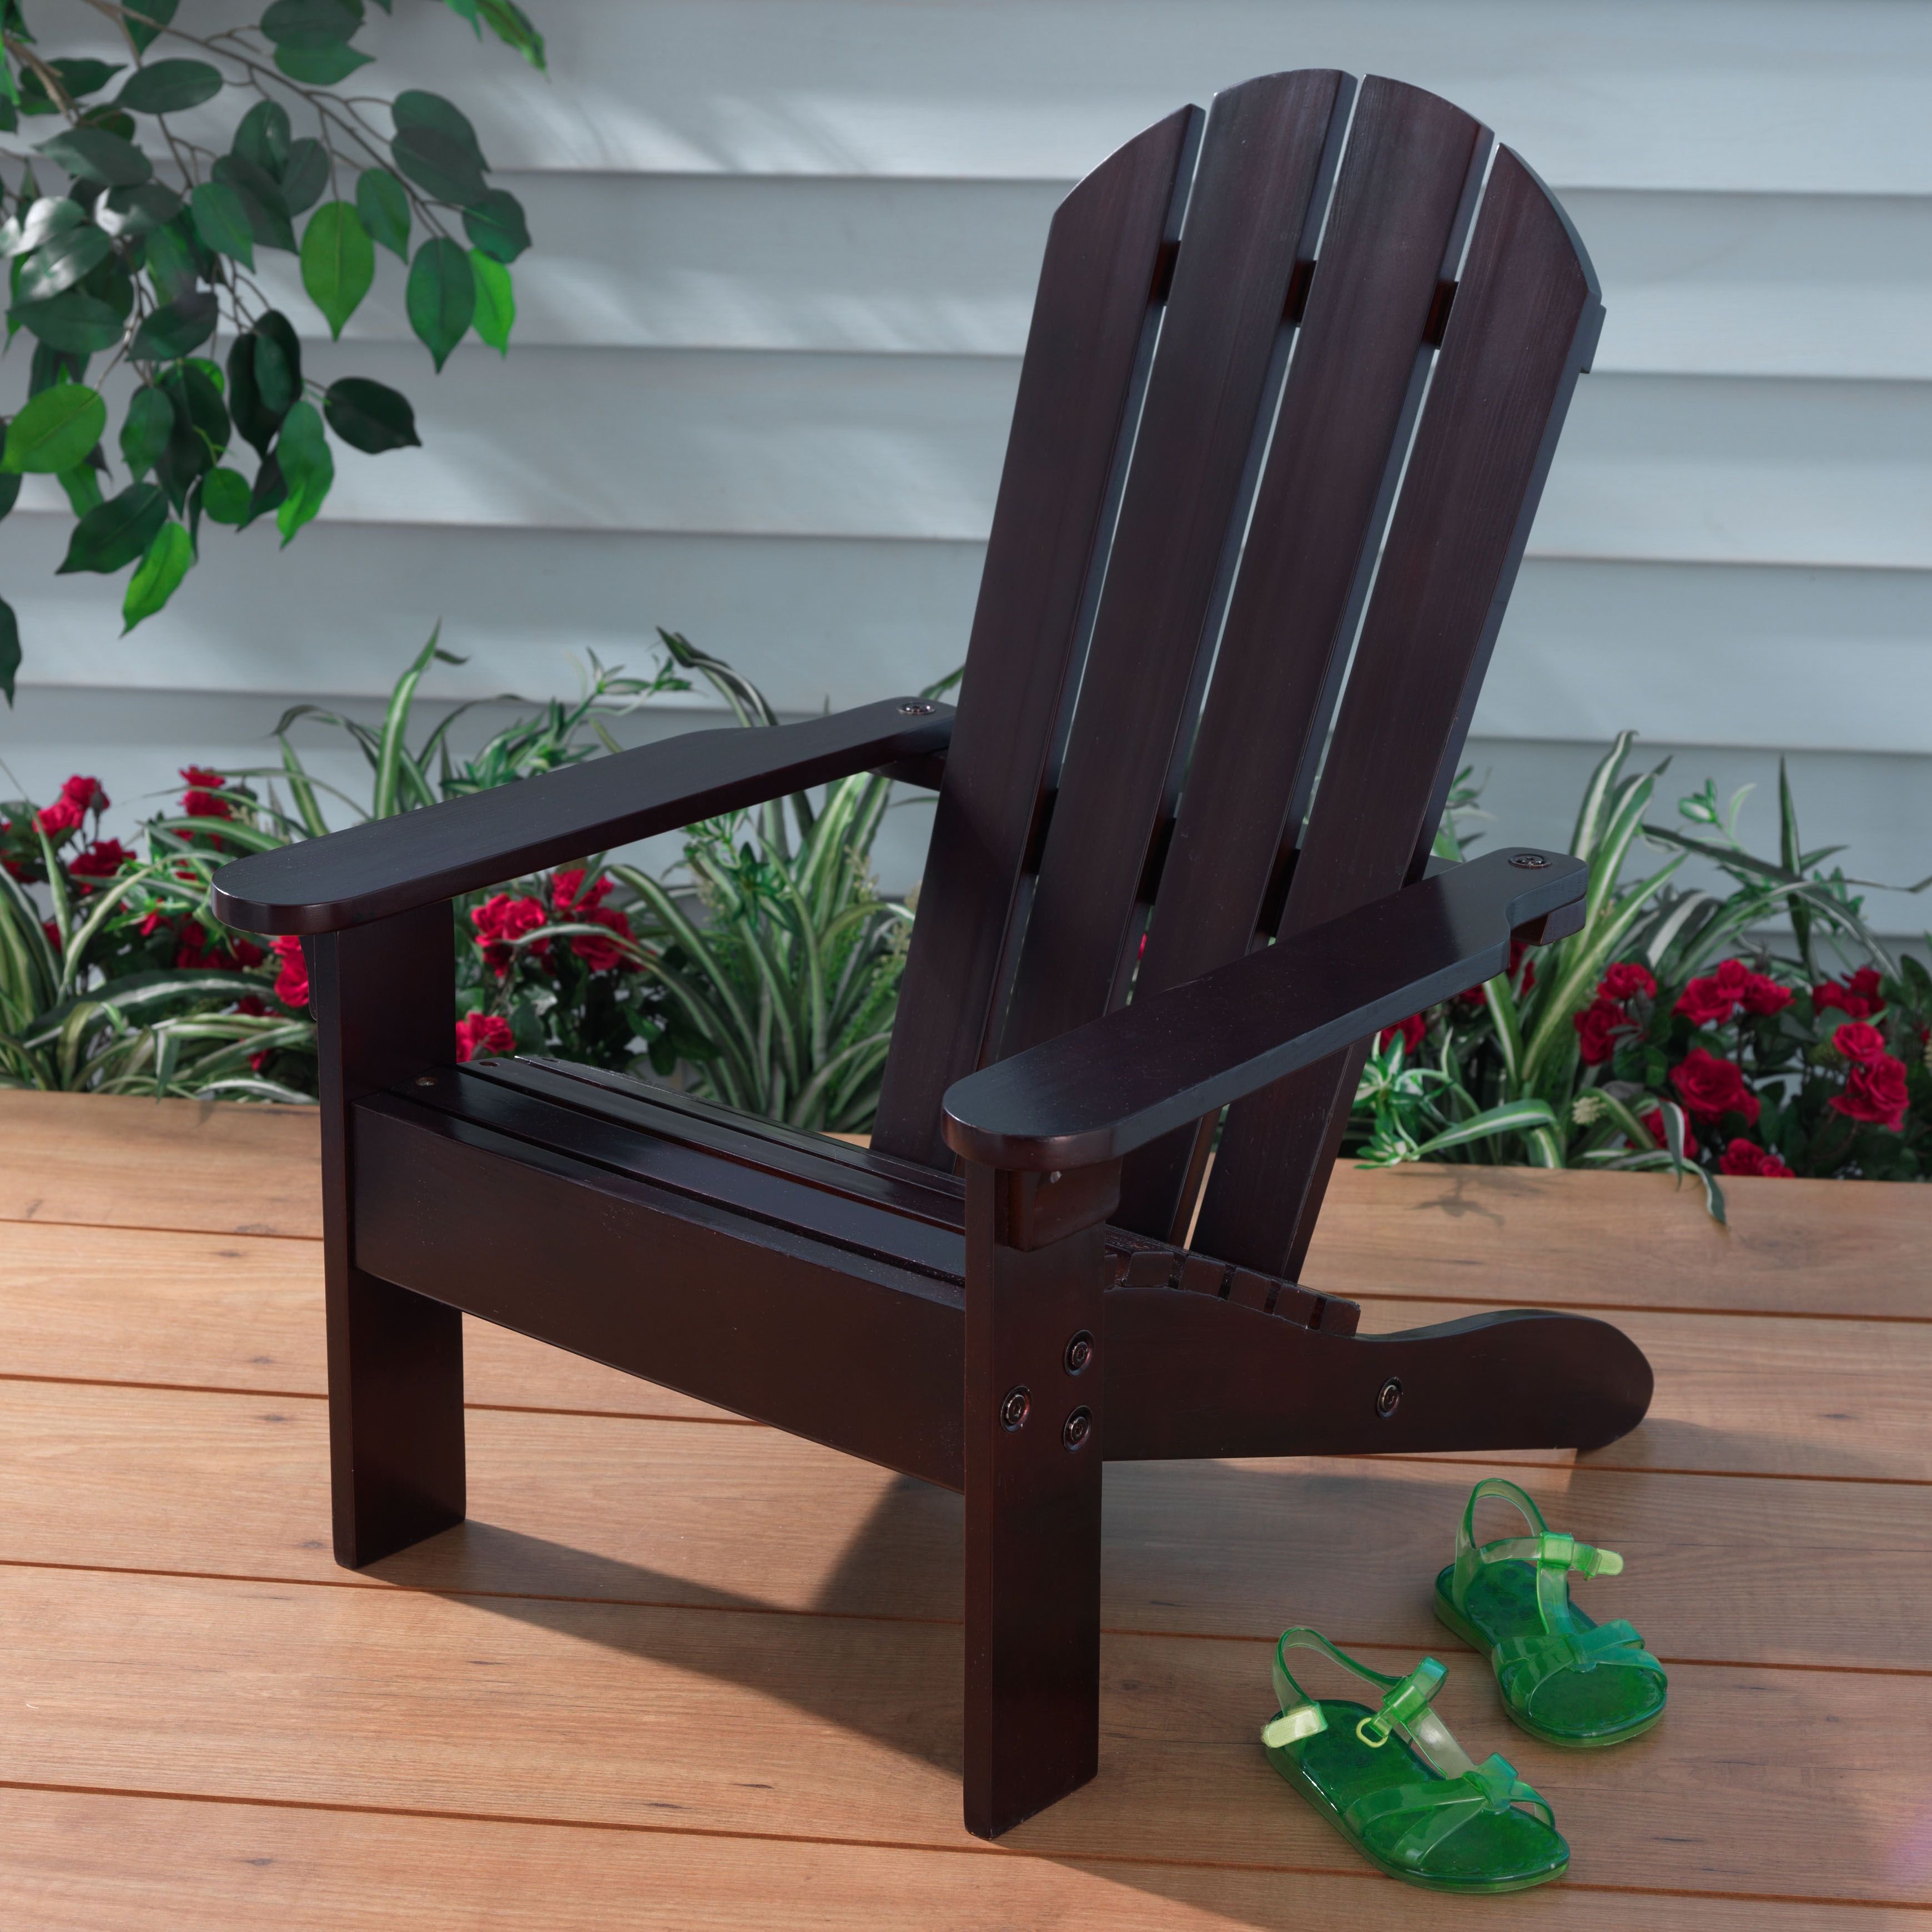 Pin on Outdoor Kids Furniture